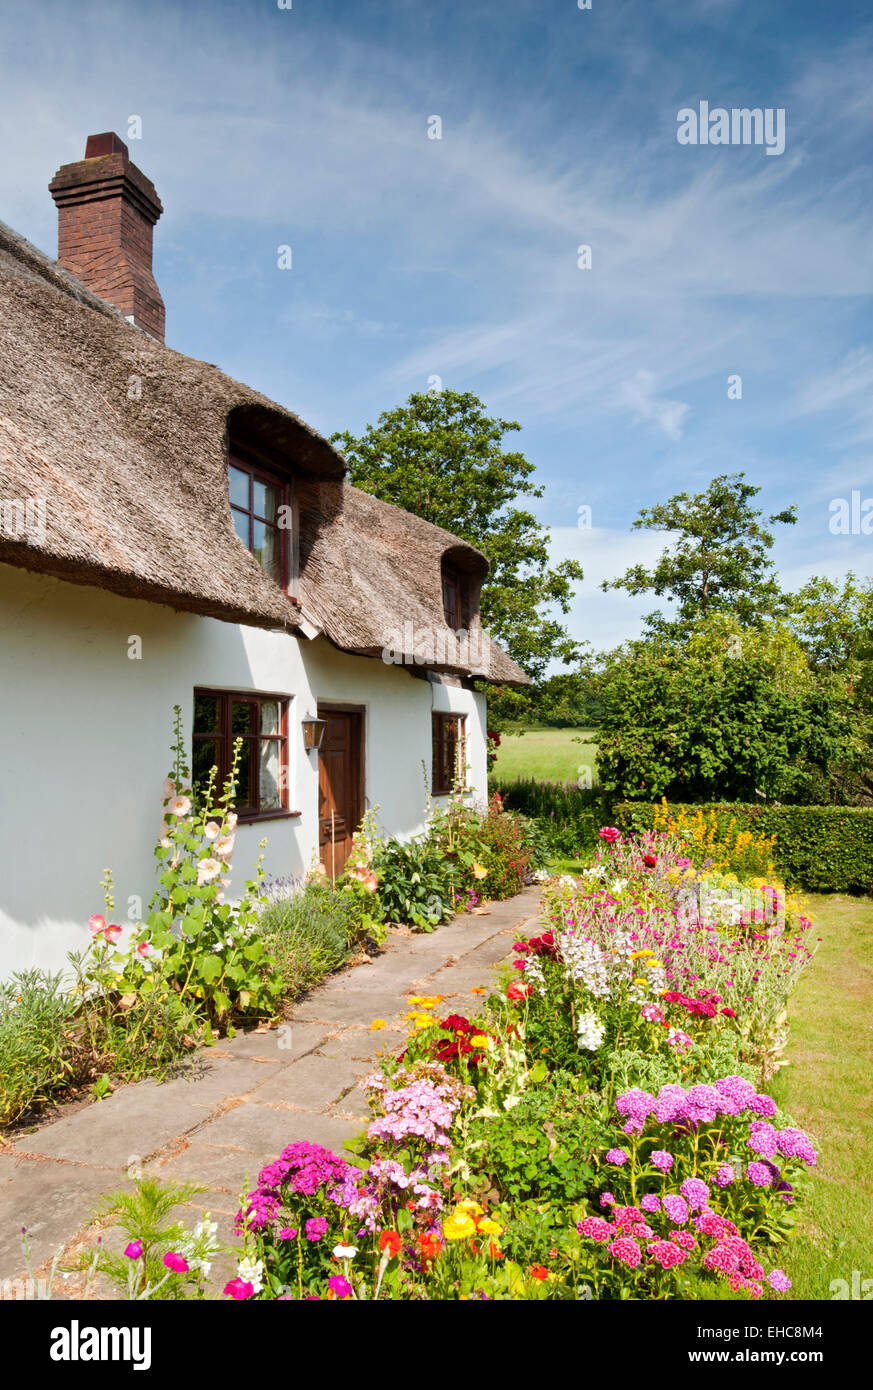 Kidbrook Cottage in Summer, Comerbach, Cheshire, England, UK - Stock Image